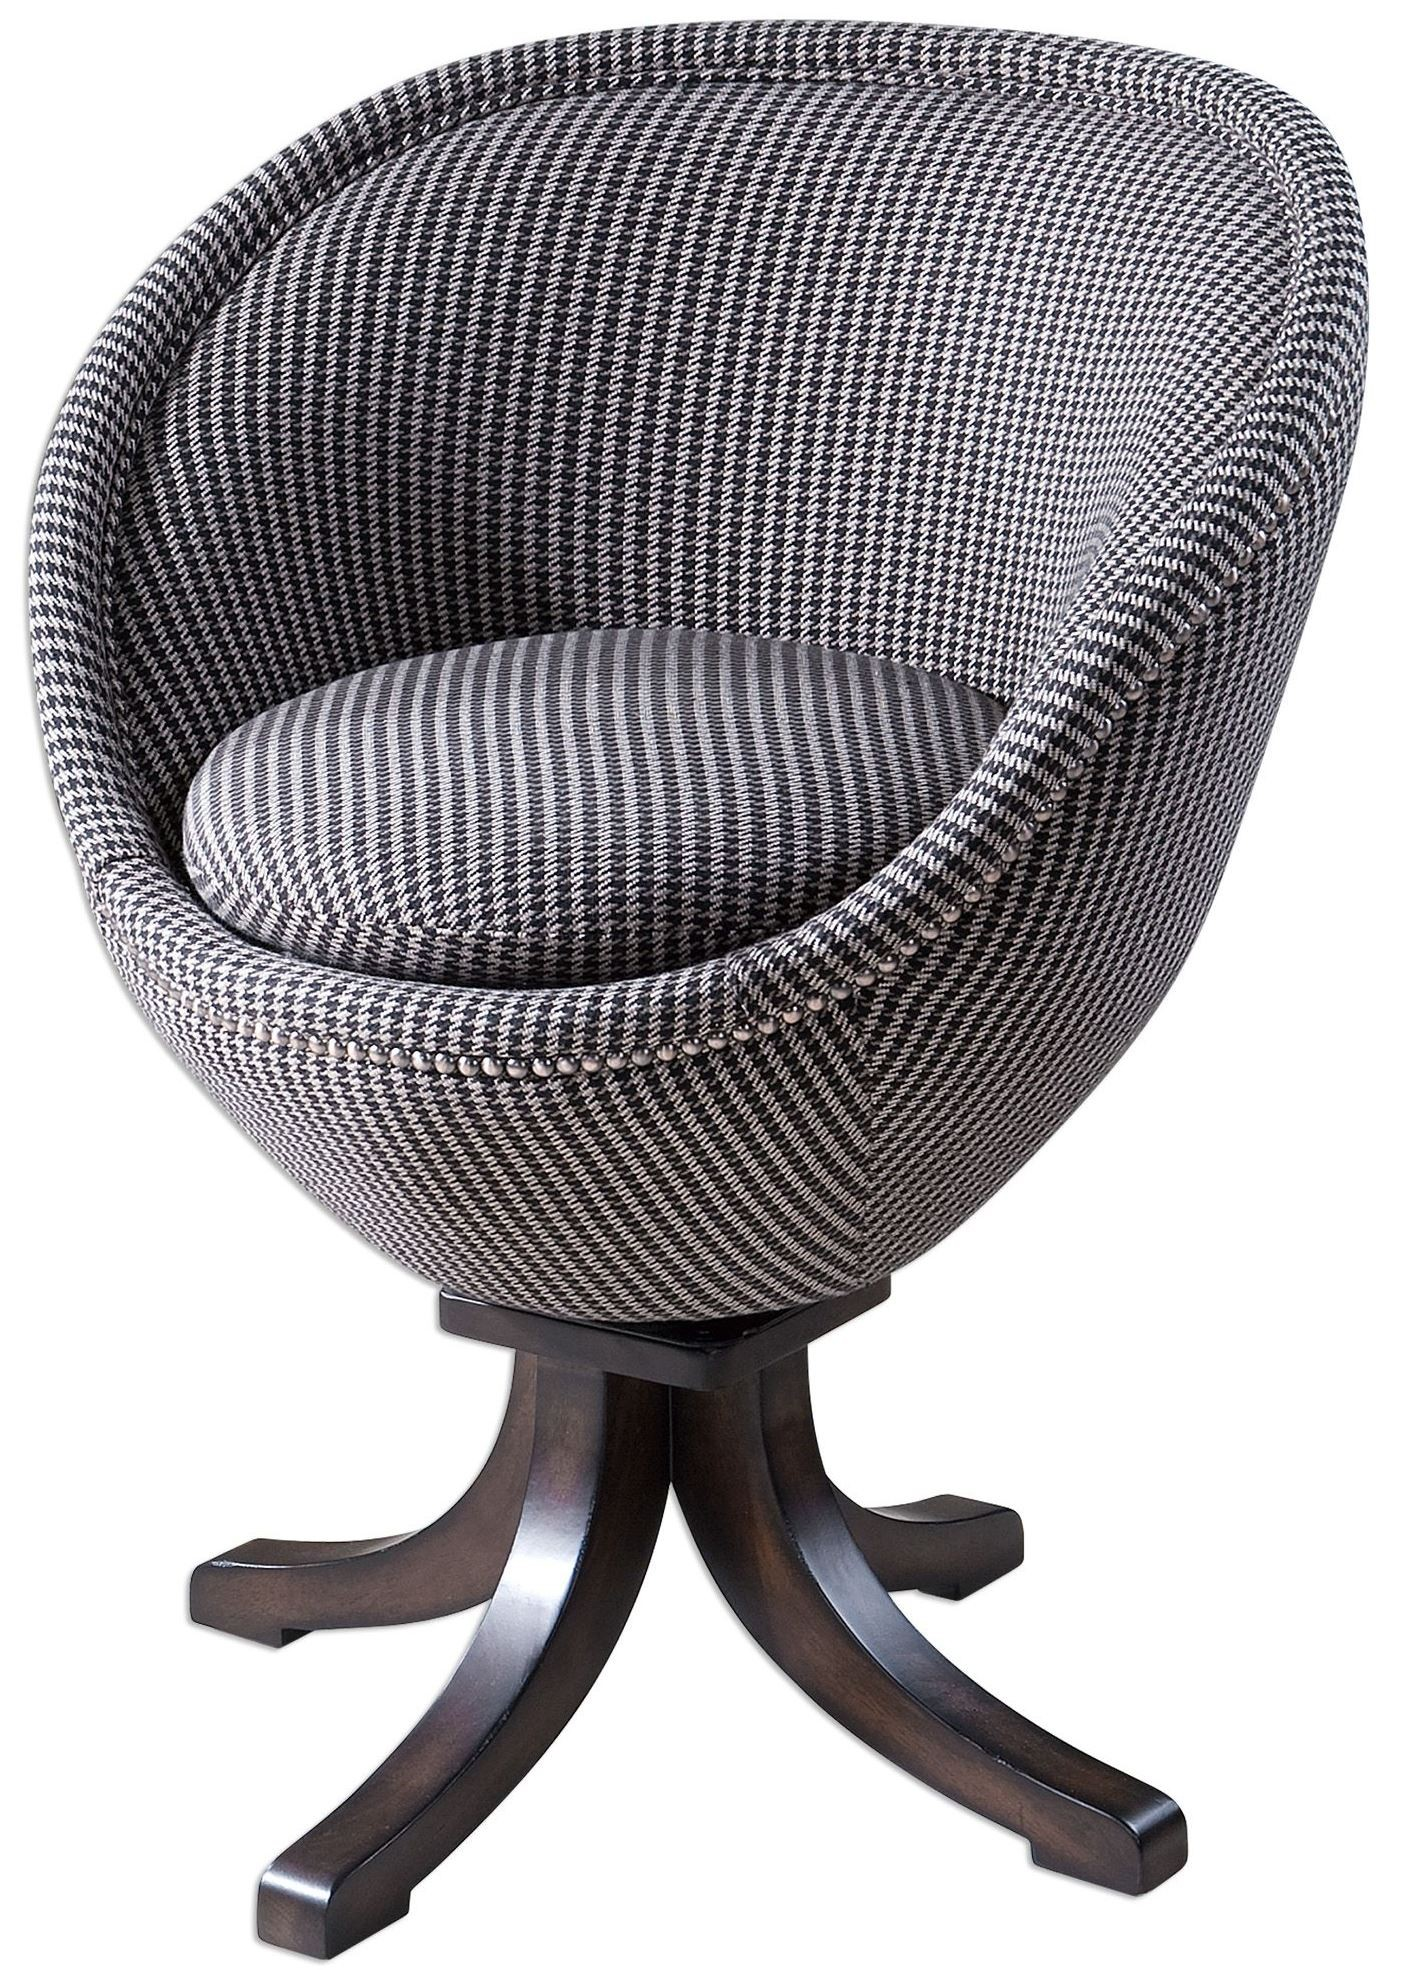 Retro Accent Chairs Rufar Retro Accent Chair From Uttermost 23267 Coleman